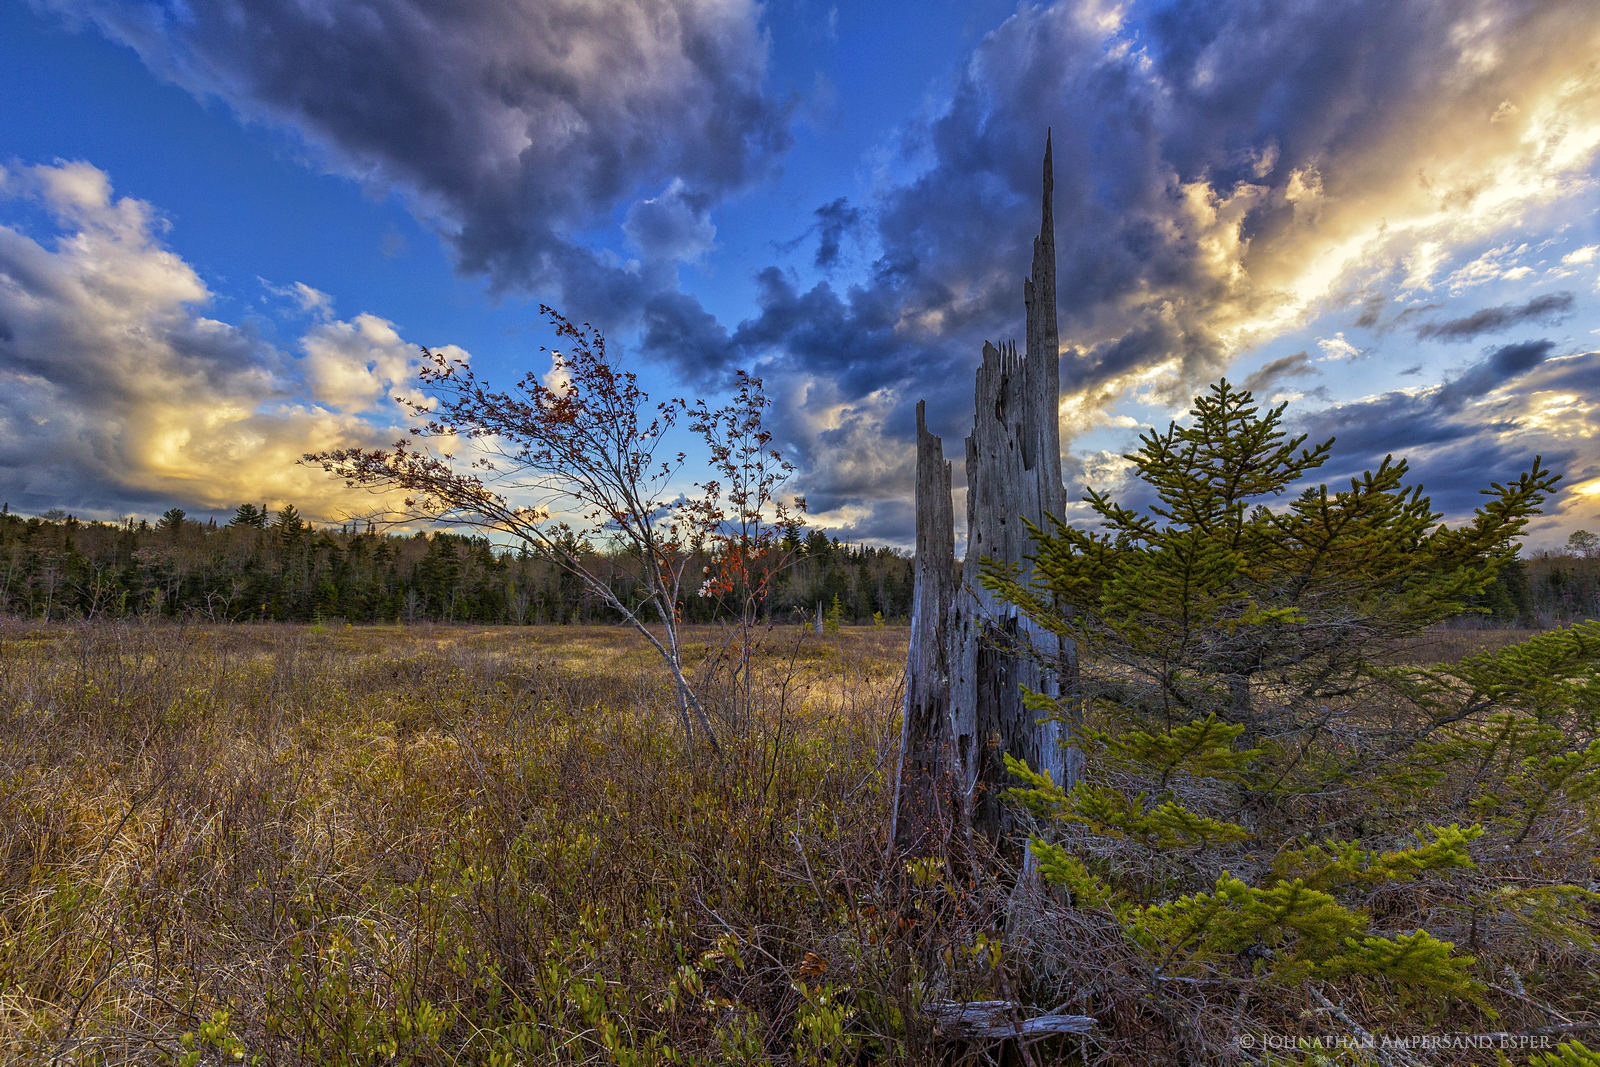 Rock Lake,bog,tree stump,stump,dogwood,dramatic sky,wetlands,Rock Lake bog tree stump,Adirondacks,Johnathan Esper, photo